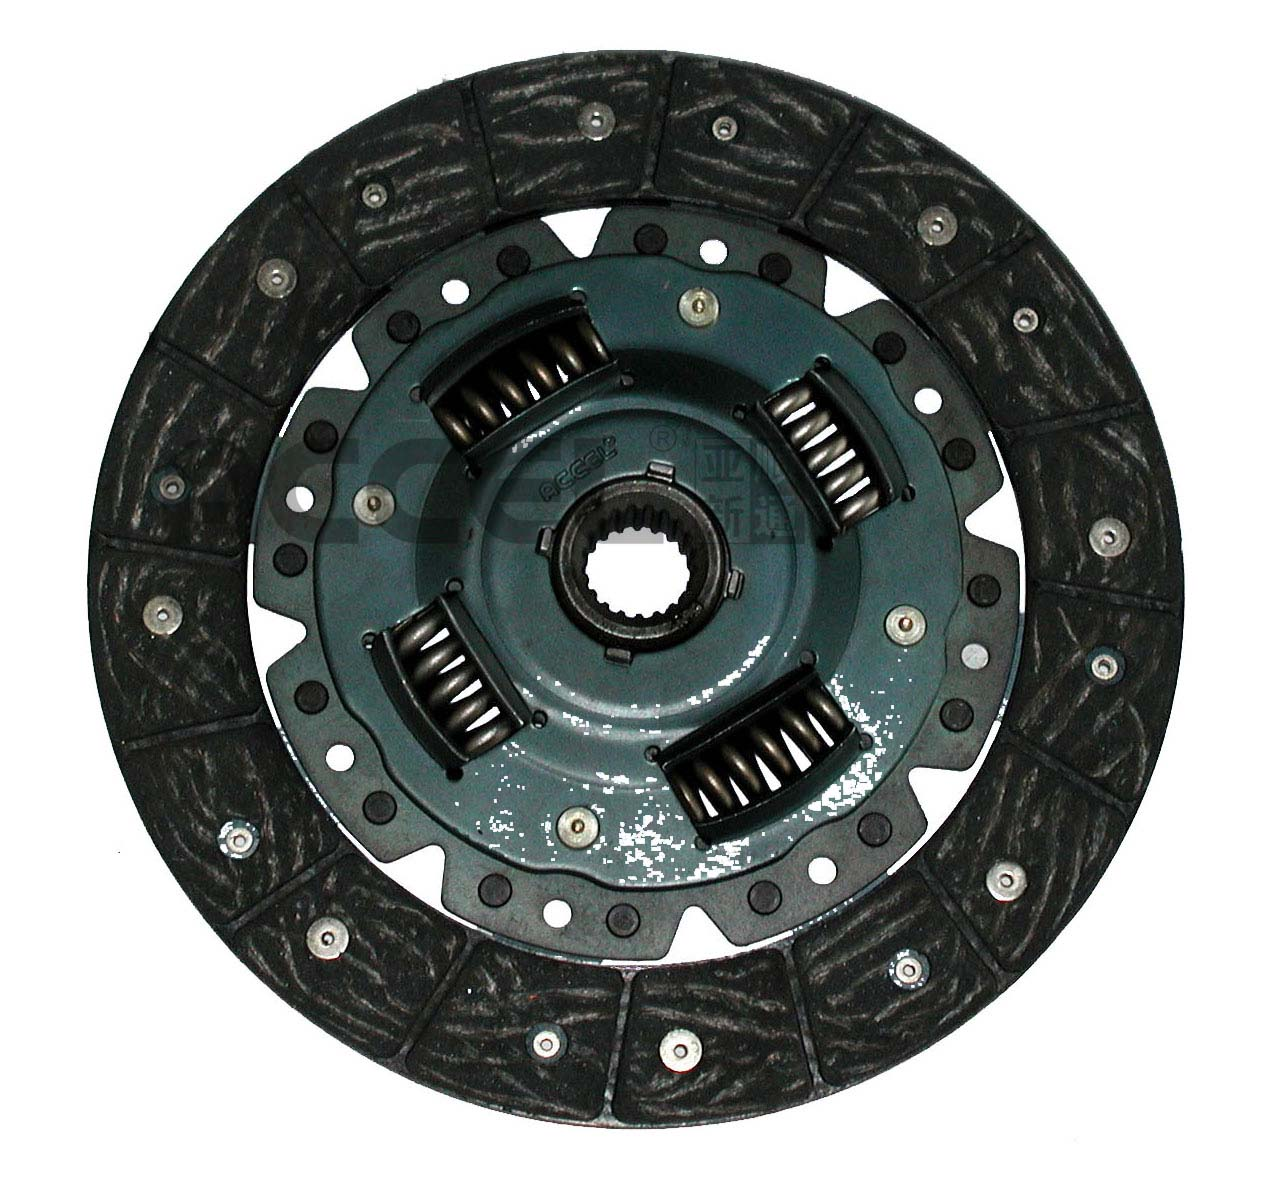 Clutch Disc/OE:22200-P08-000/212*150*20*22/AHC-008/HONDA/CL0178/HCD017